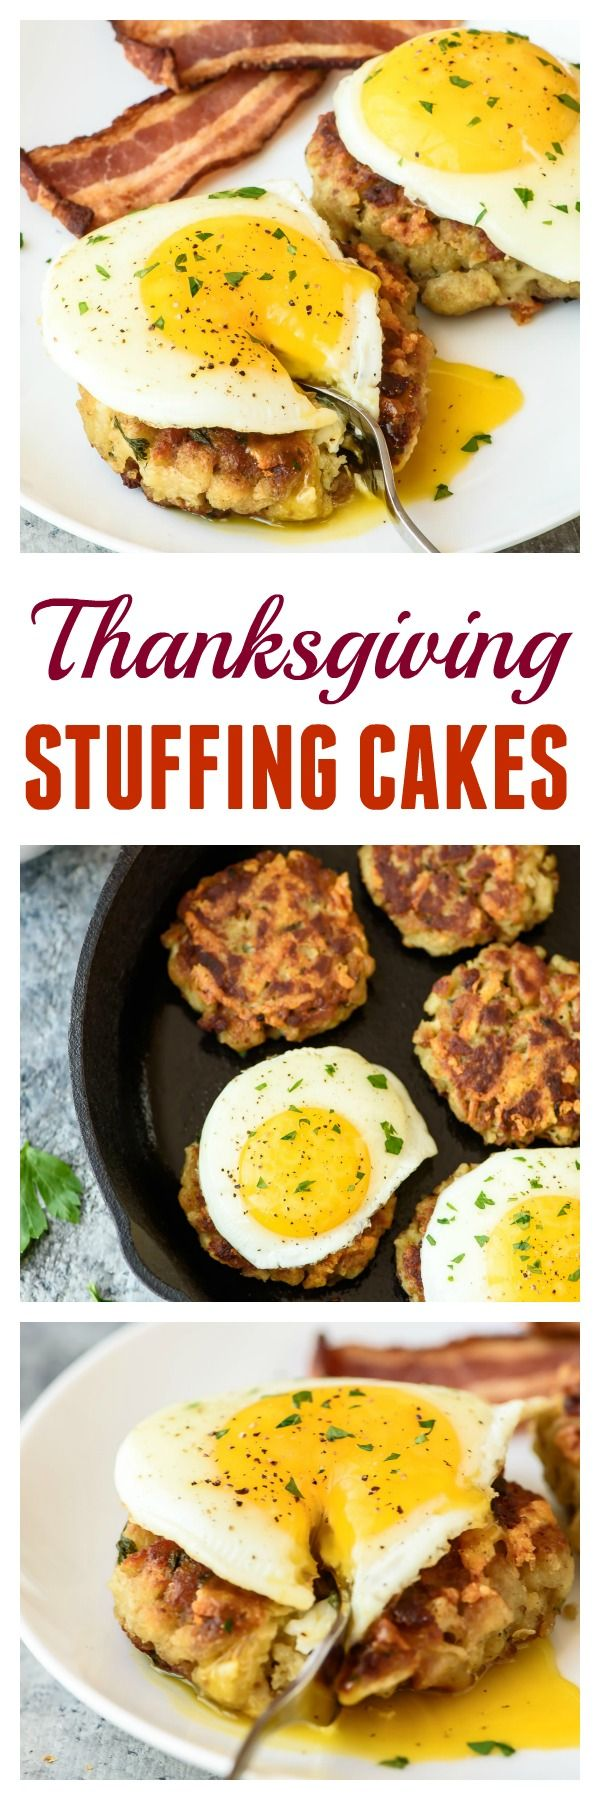 Turn your leftover Thanksgiving stuffing into Cheesy Stuffing Breakfast Cakes! Golden and crispy on the outside, moist and cheesy on the inside, and ready to go in only 20 minutes! The perfect breakfast recipe for the day after Thanksgiving.